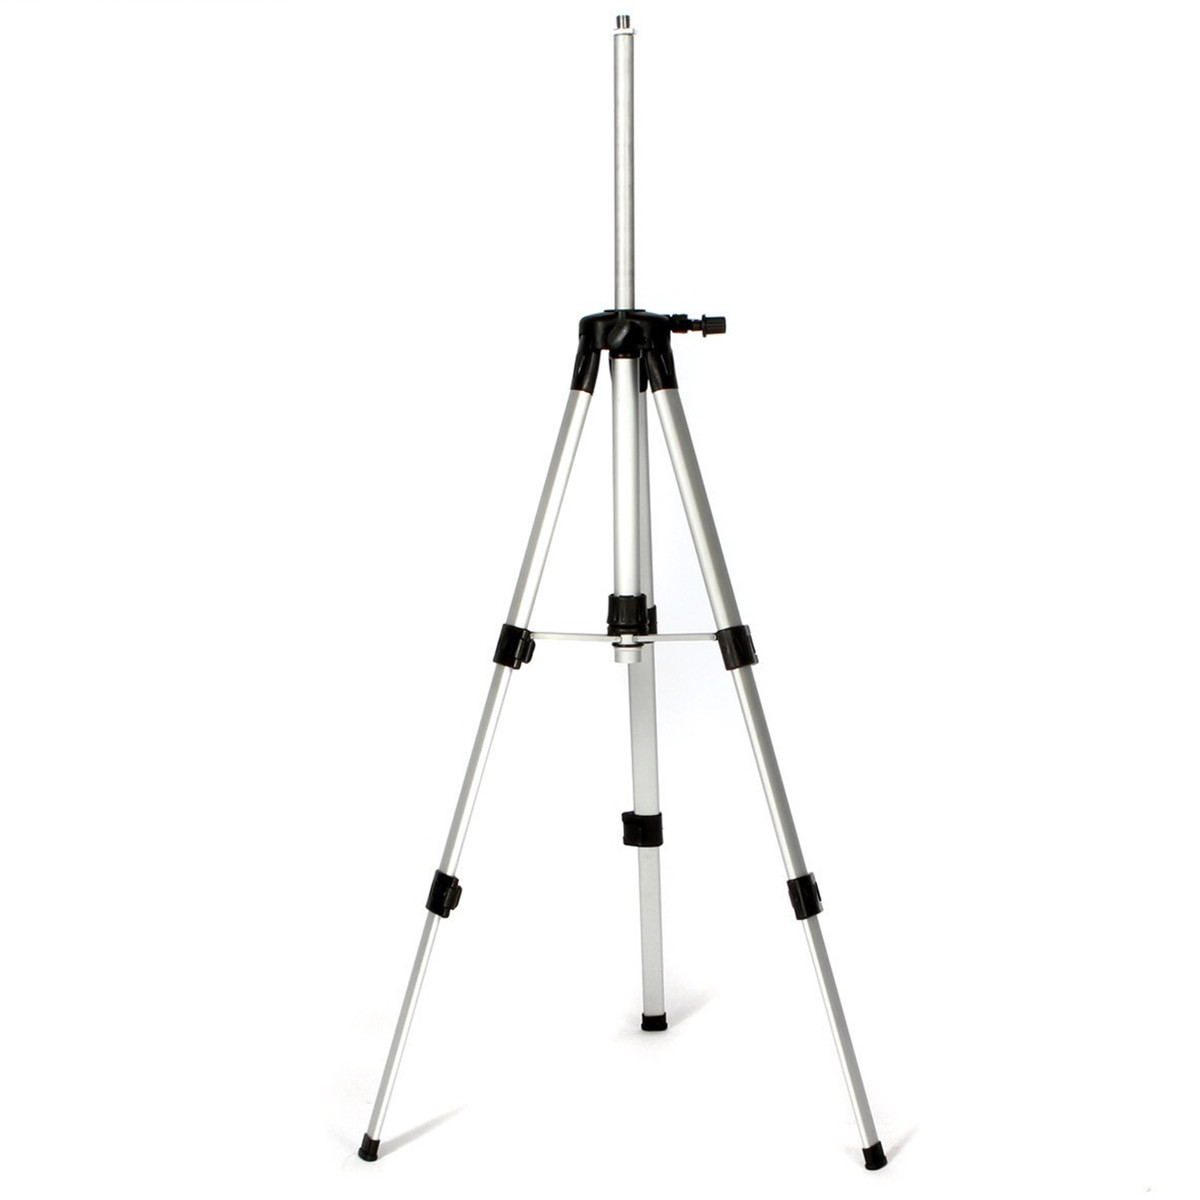 1.5M Universal Adjustable Alloy Tripod Stand Extension For Laser Air Level with Bag